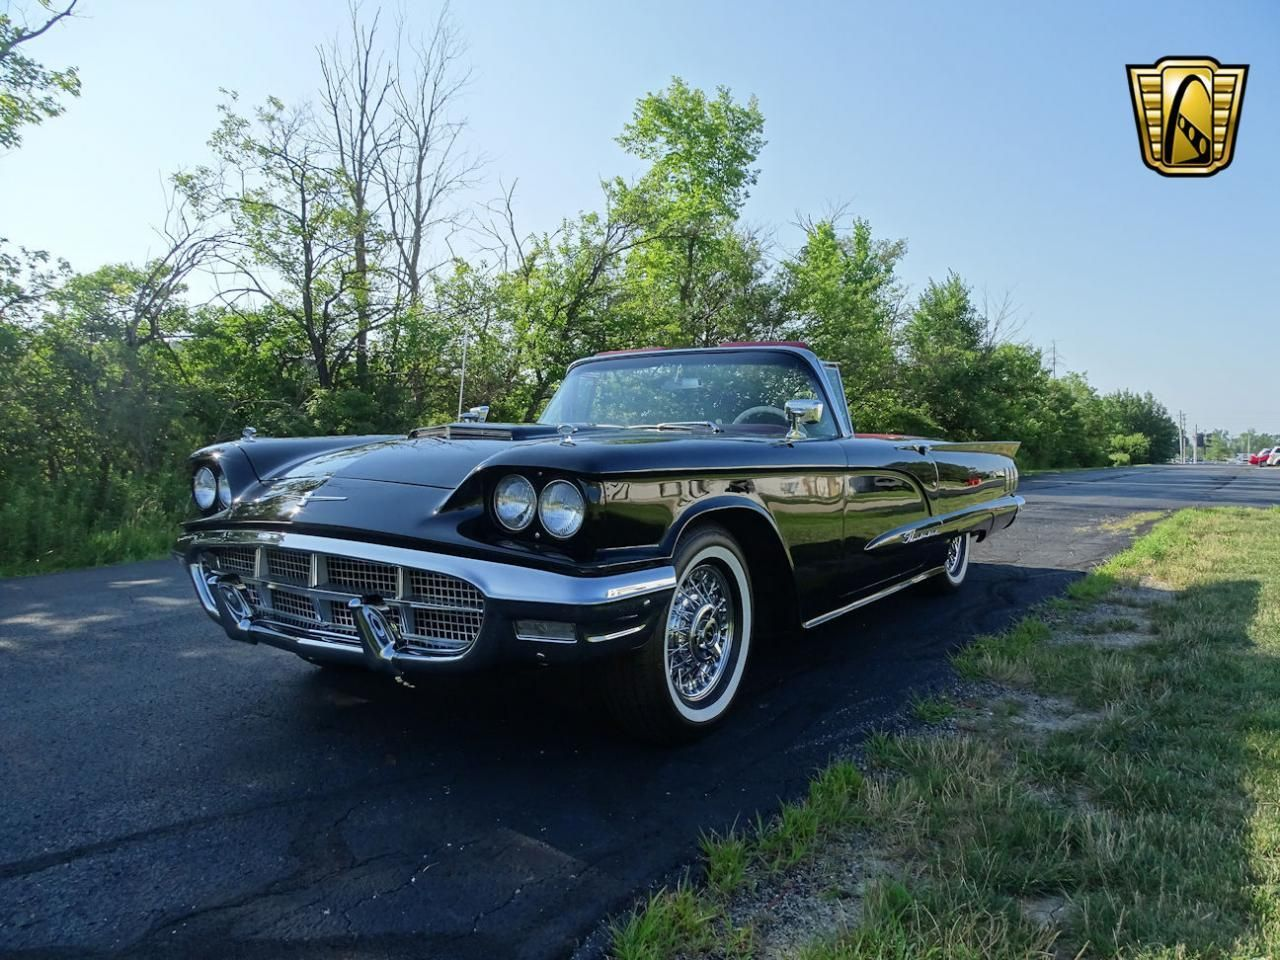 1960 Ford Thunderbird Thunderbird Car Ford Thunderbird Lincoln Cars